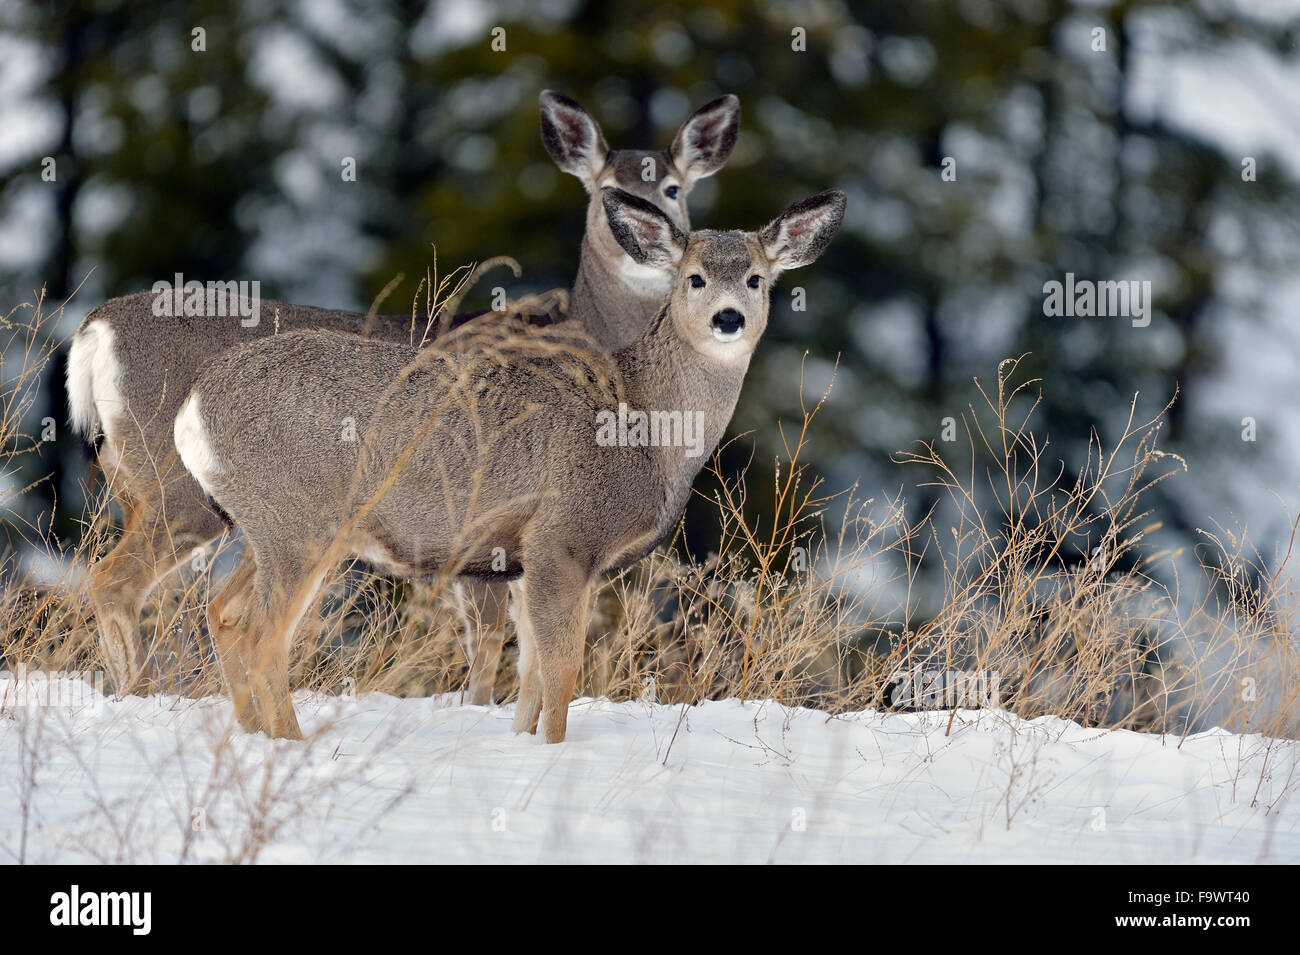 A mother and fawn mule deer standing on a hill in the fresh snow in rural Alberta Canada. - Stock Image